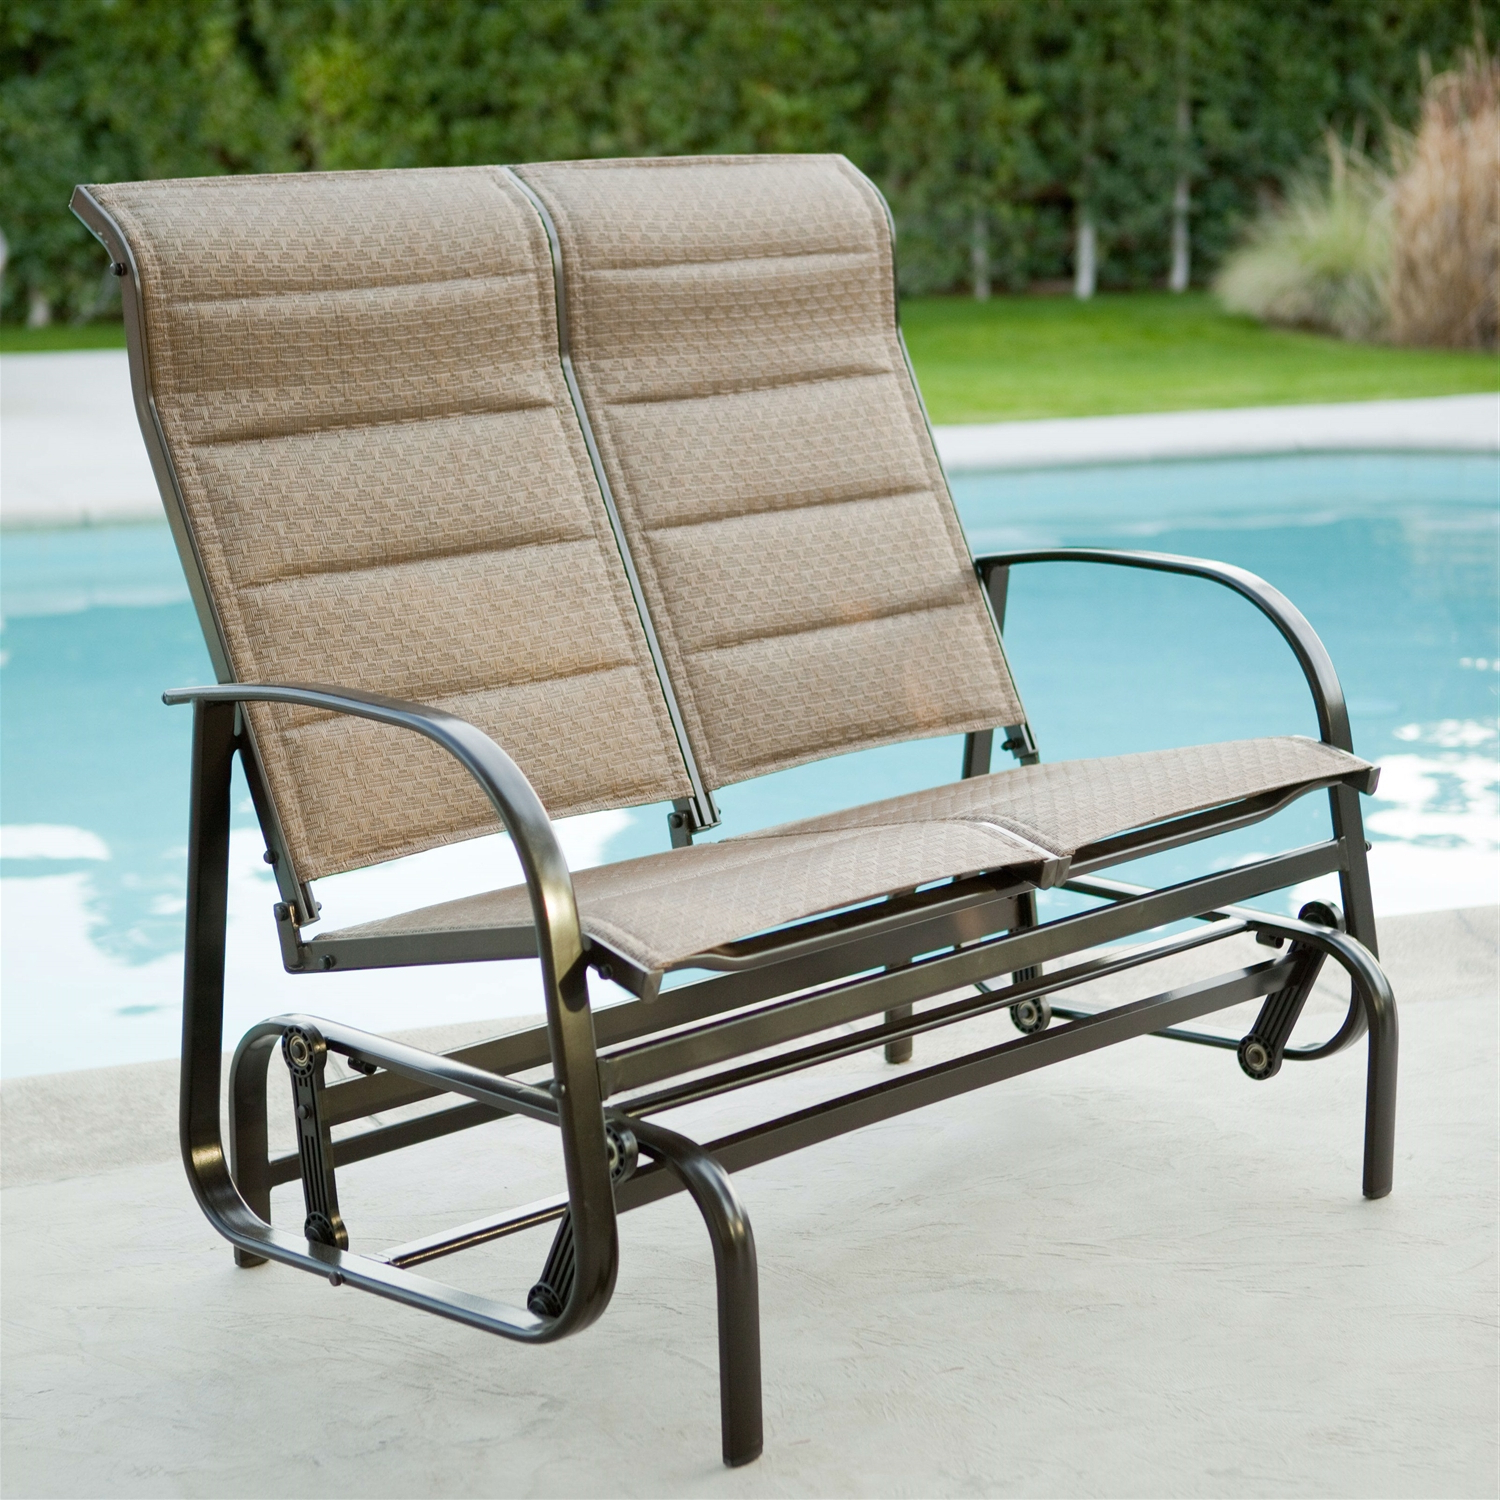 Furniture Patio Weatherproof Sling Outdoor Loveseat Glider Regarding 2019 Sling Double Glider Benches (Gallery 26 of 30)